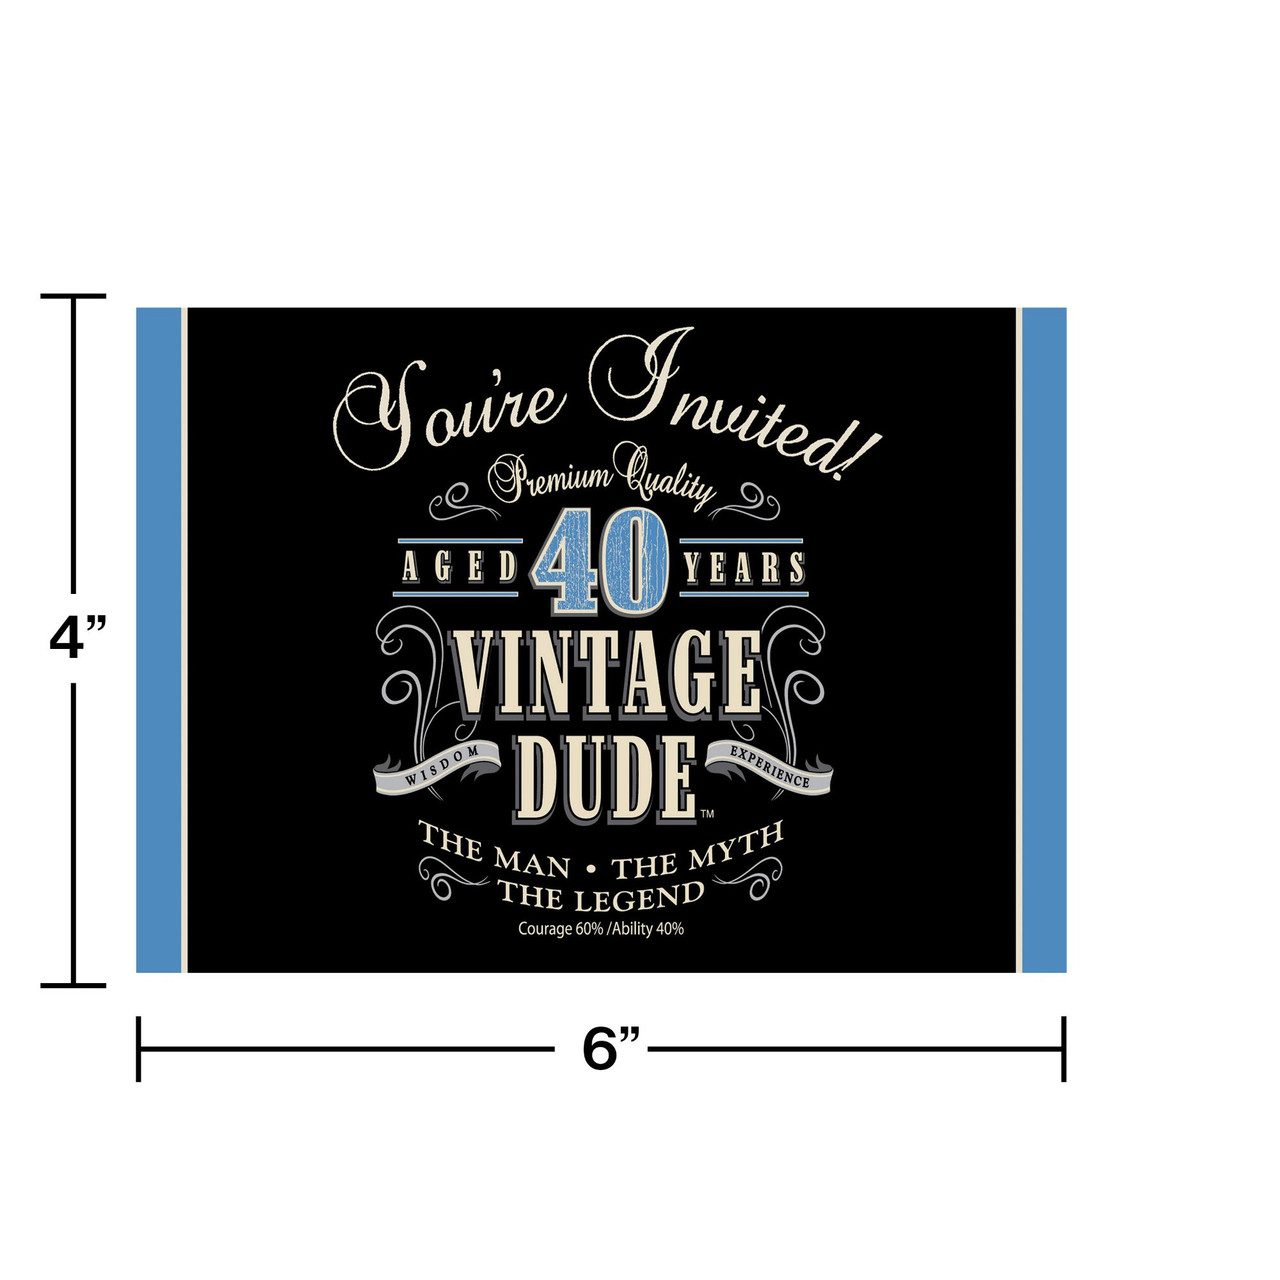 Club Pack Of 48 Vintage Dude 40th Birthday Party Gatefold Paper Invitations 6